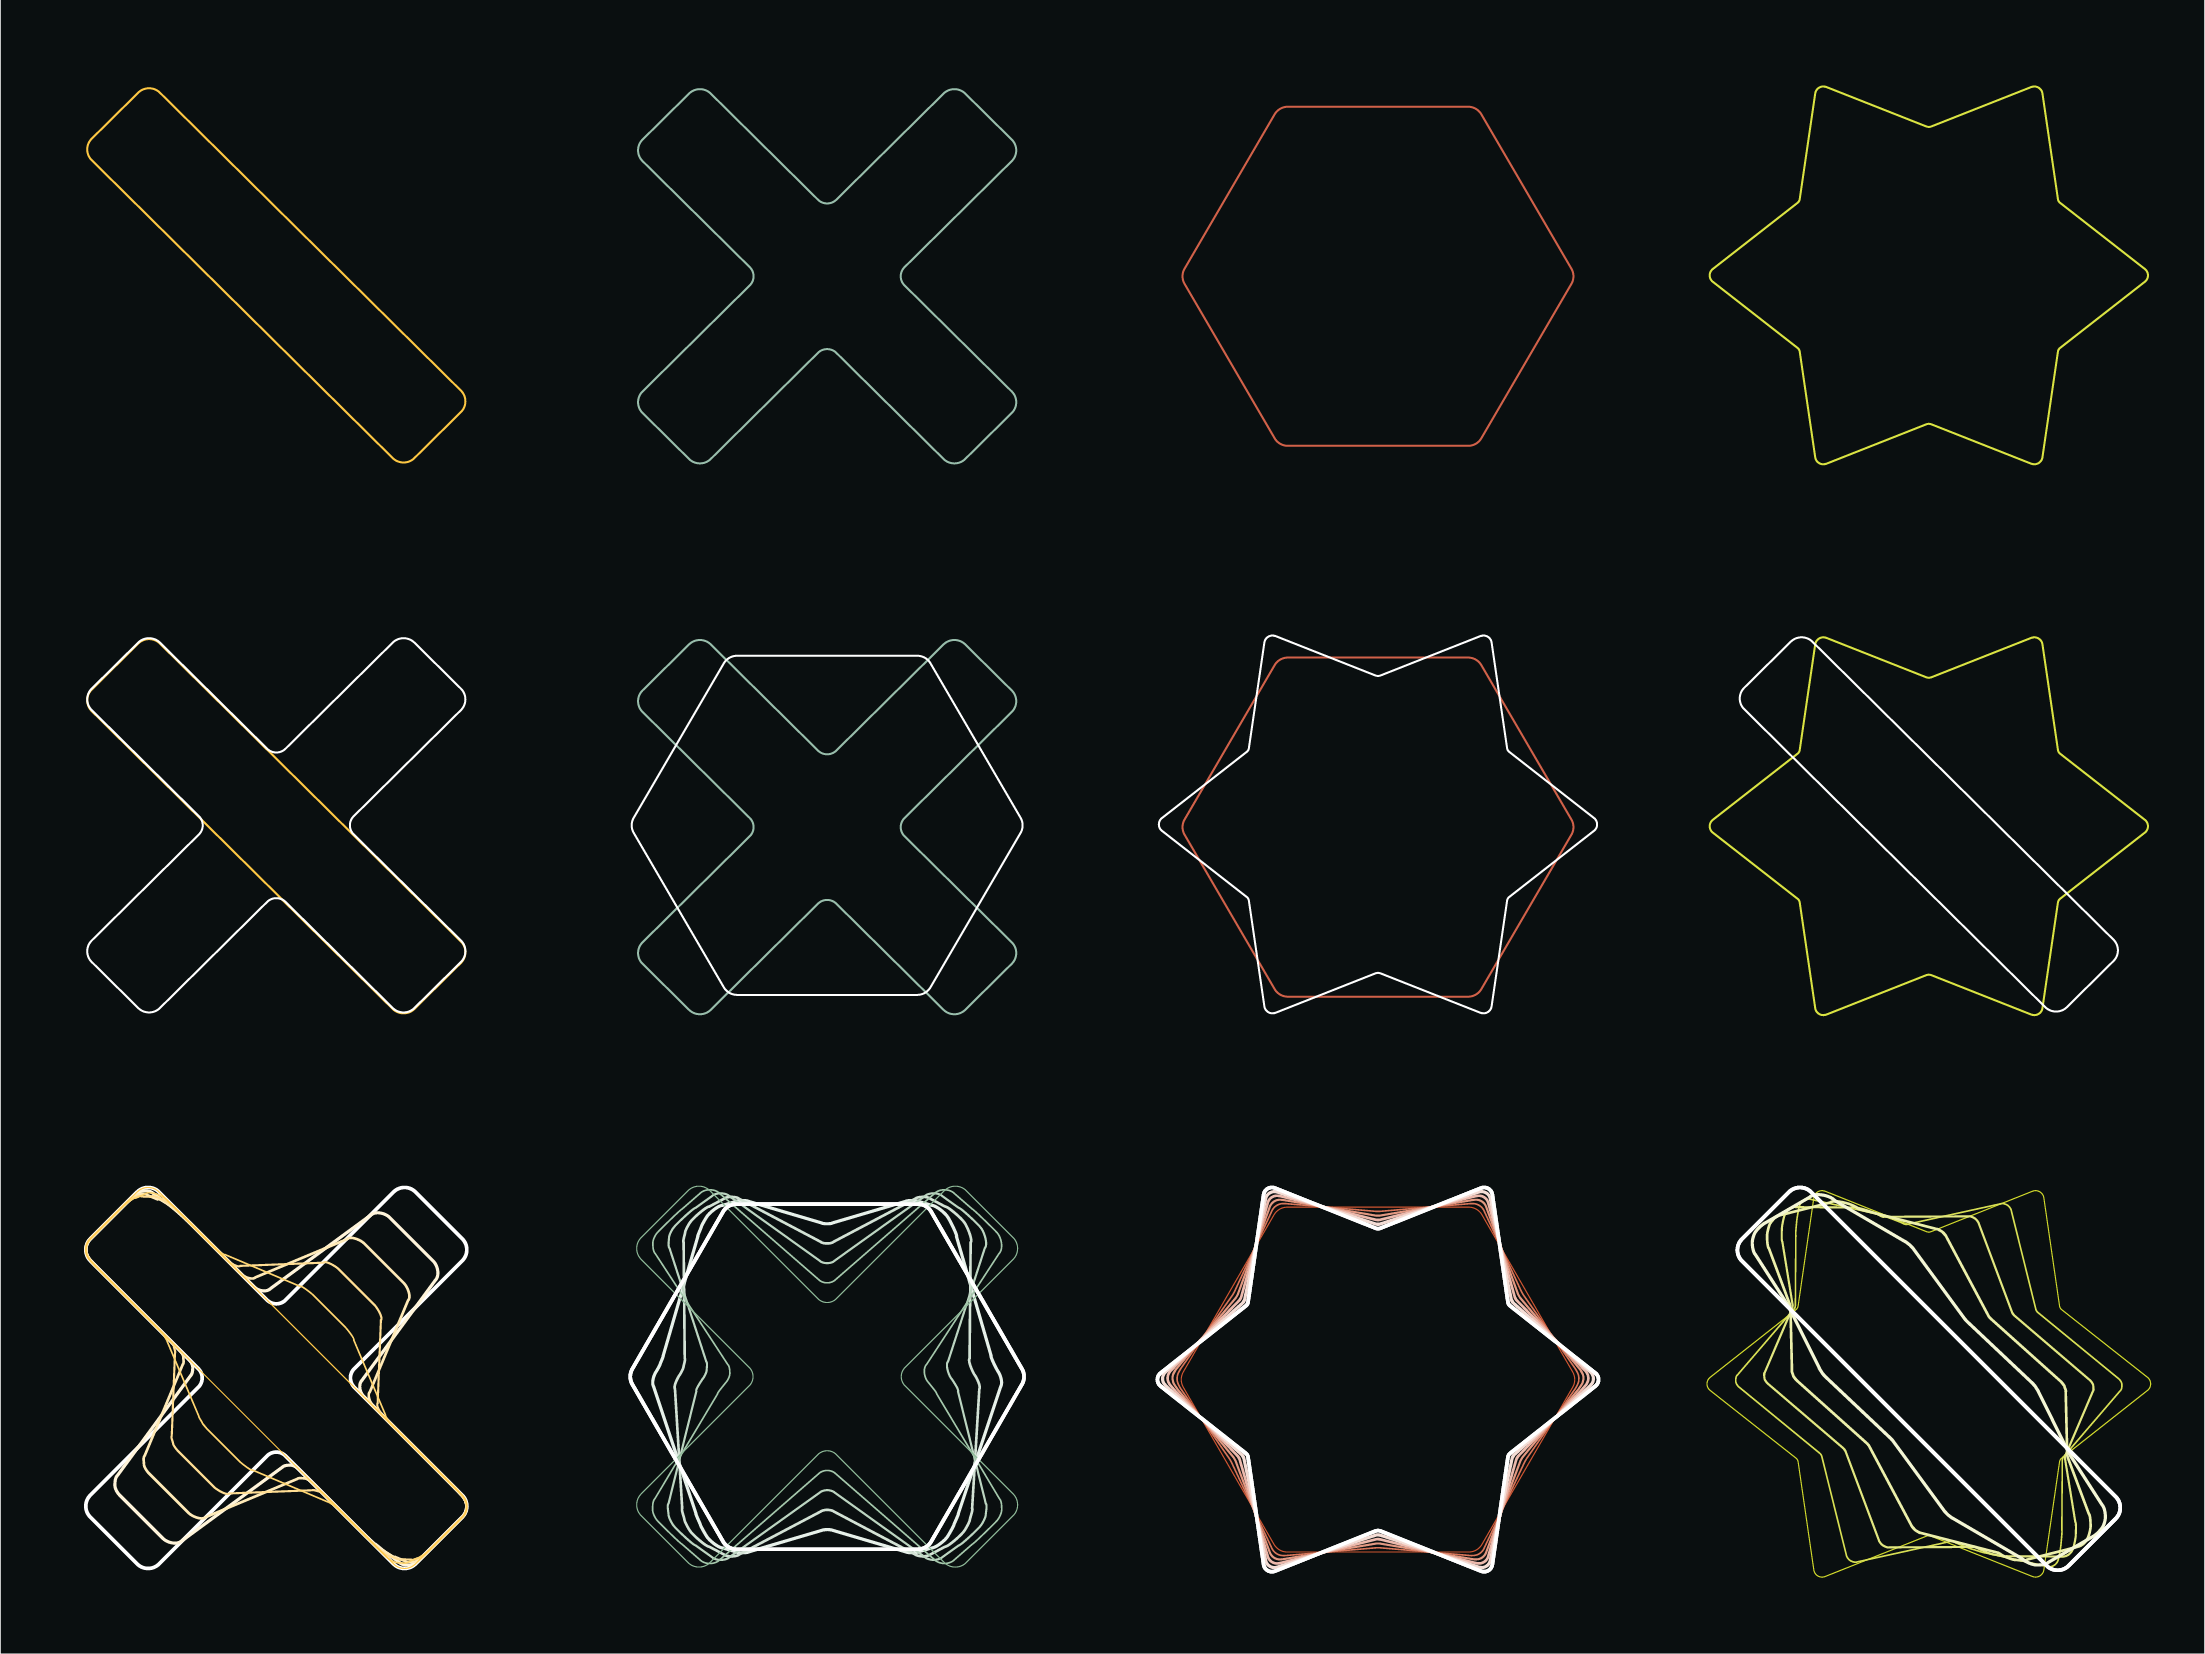 Illustrative elements built from shapes from the logo